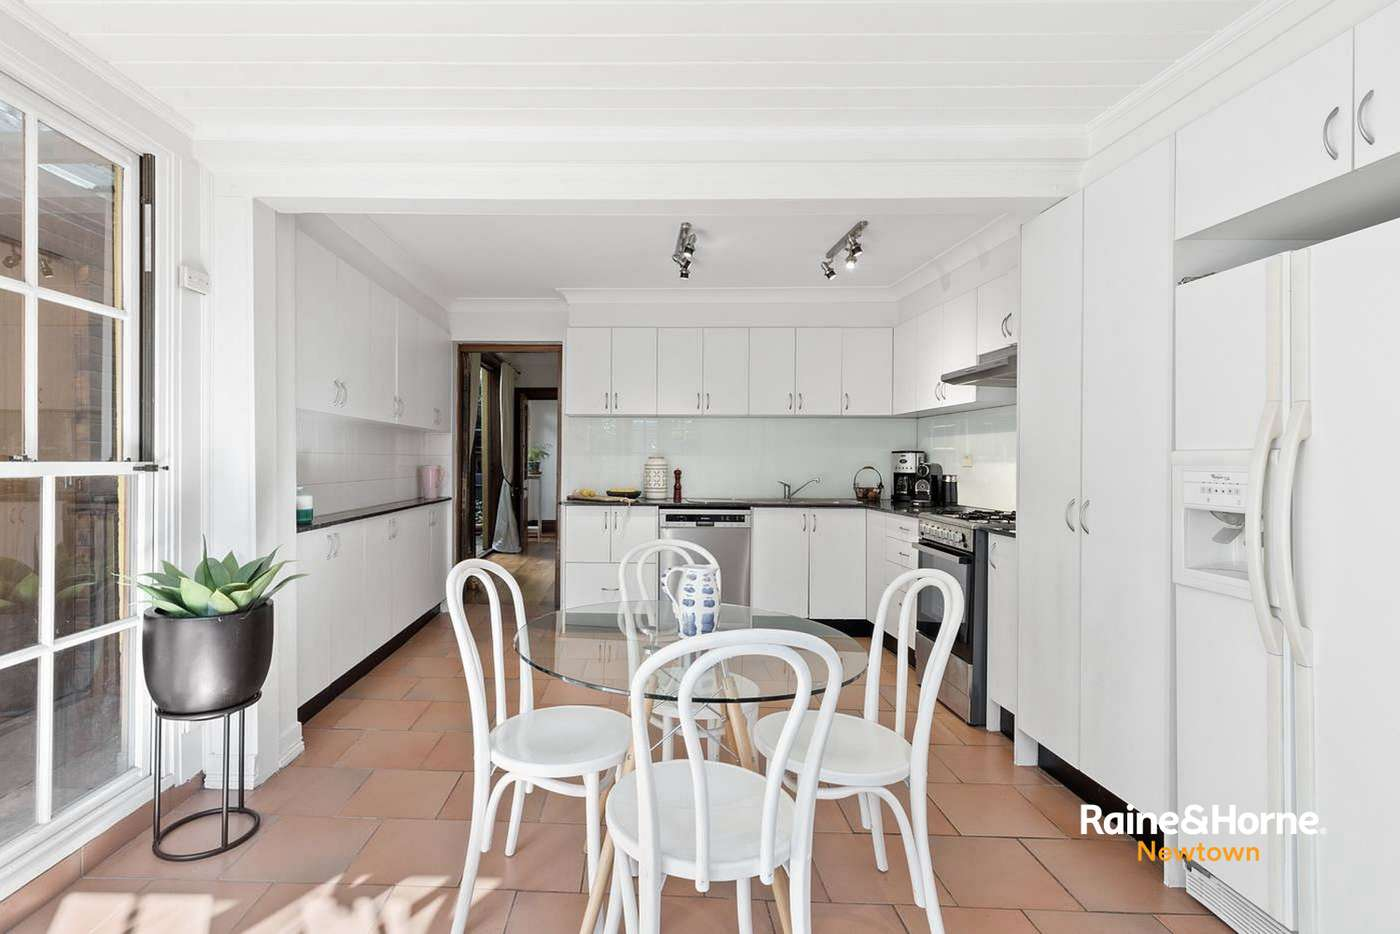 Sixth view of Homely house listing, 21 Trade Street, Newtown NSW 2042